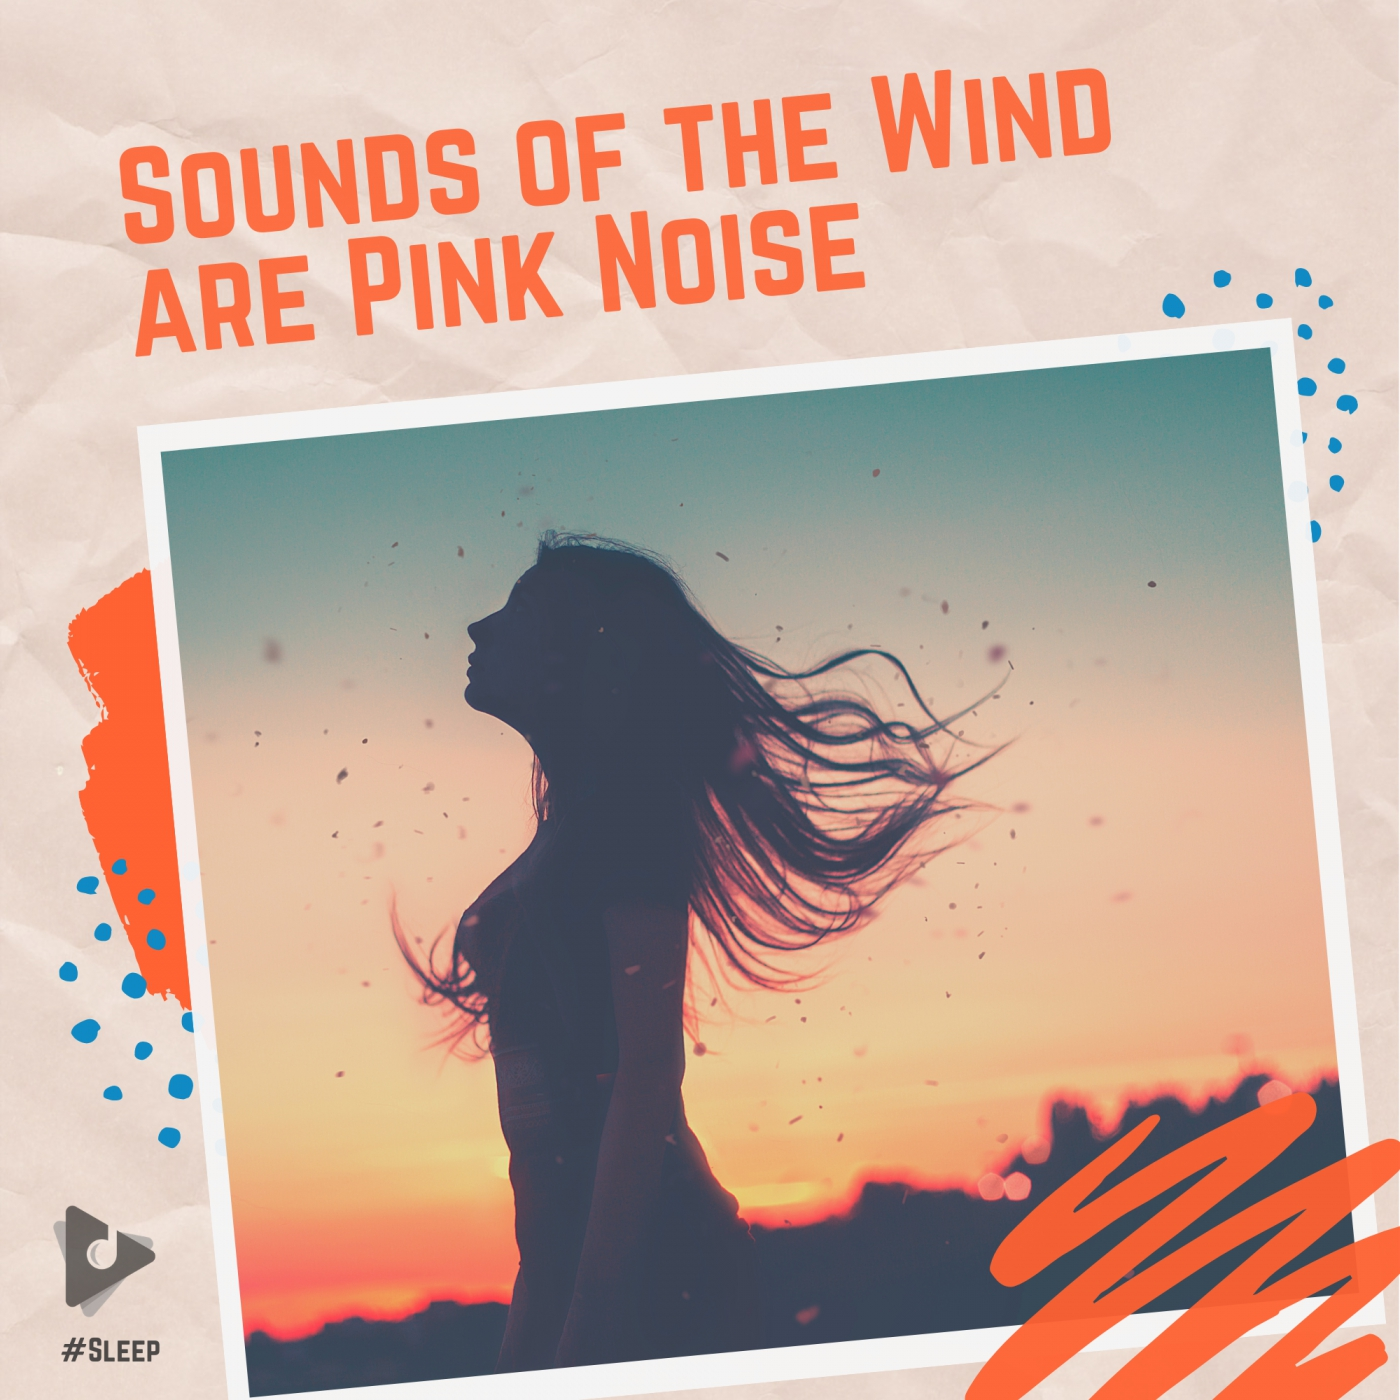 Sounds of the Wind are Pink Noise